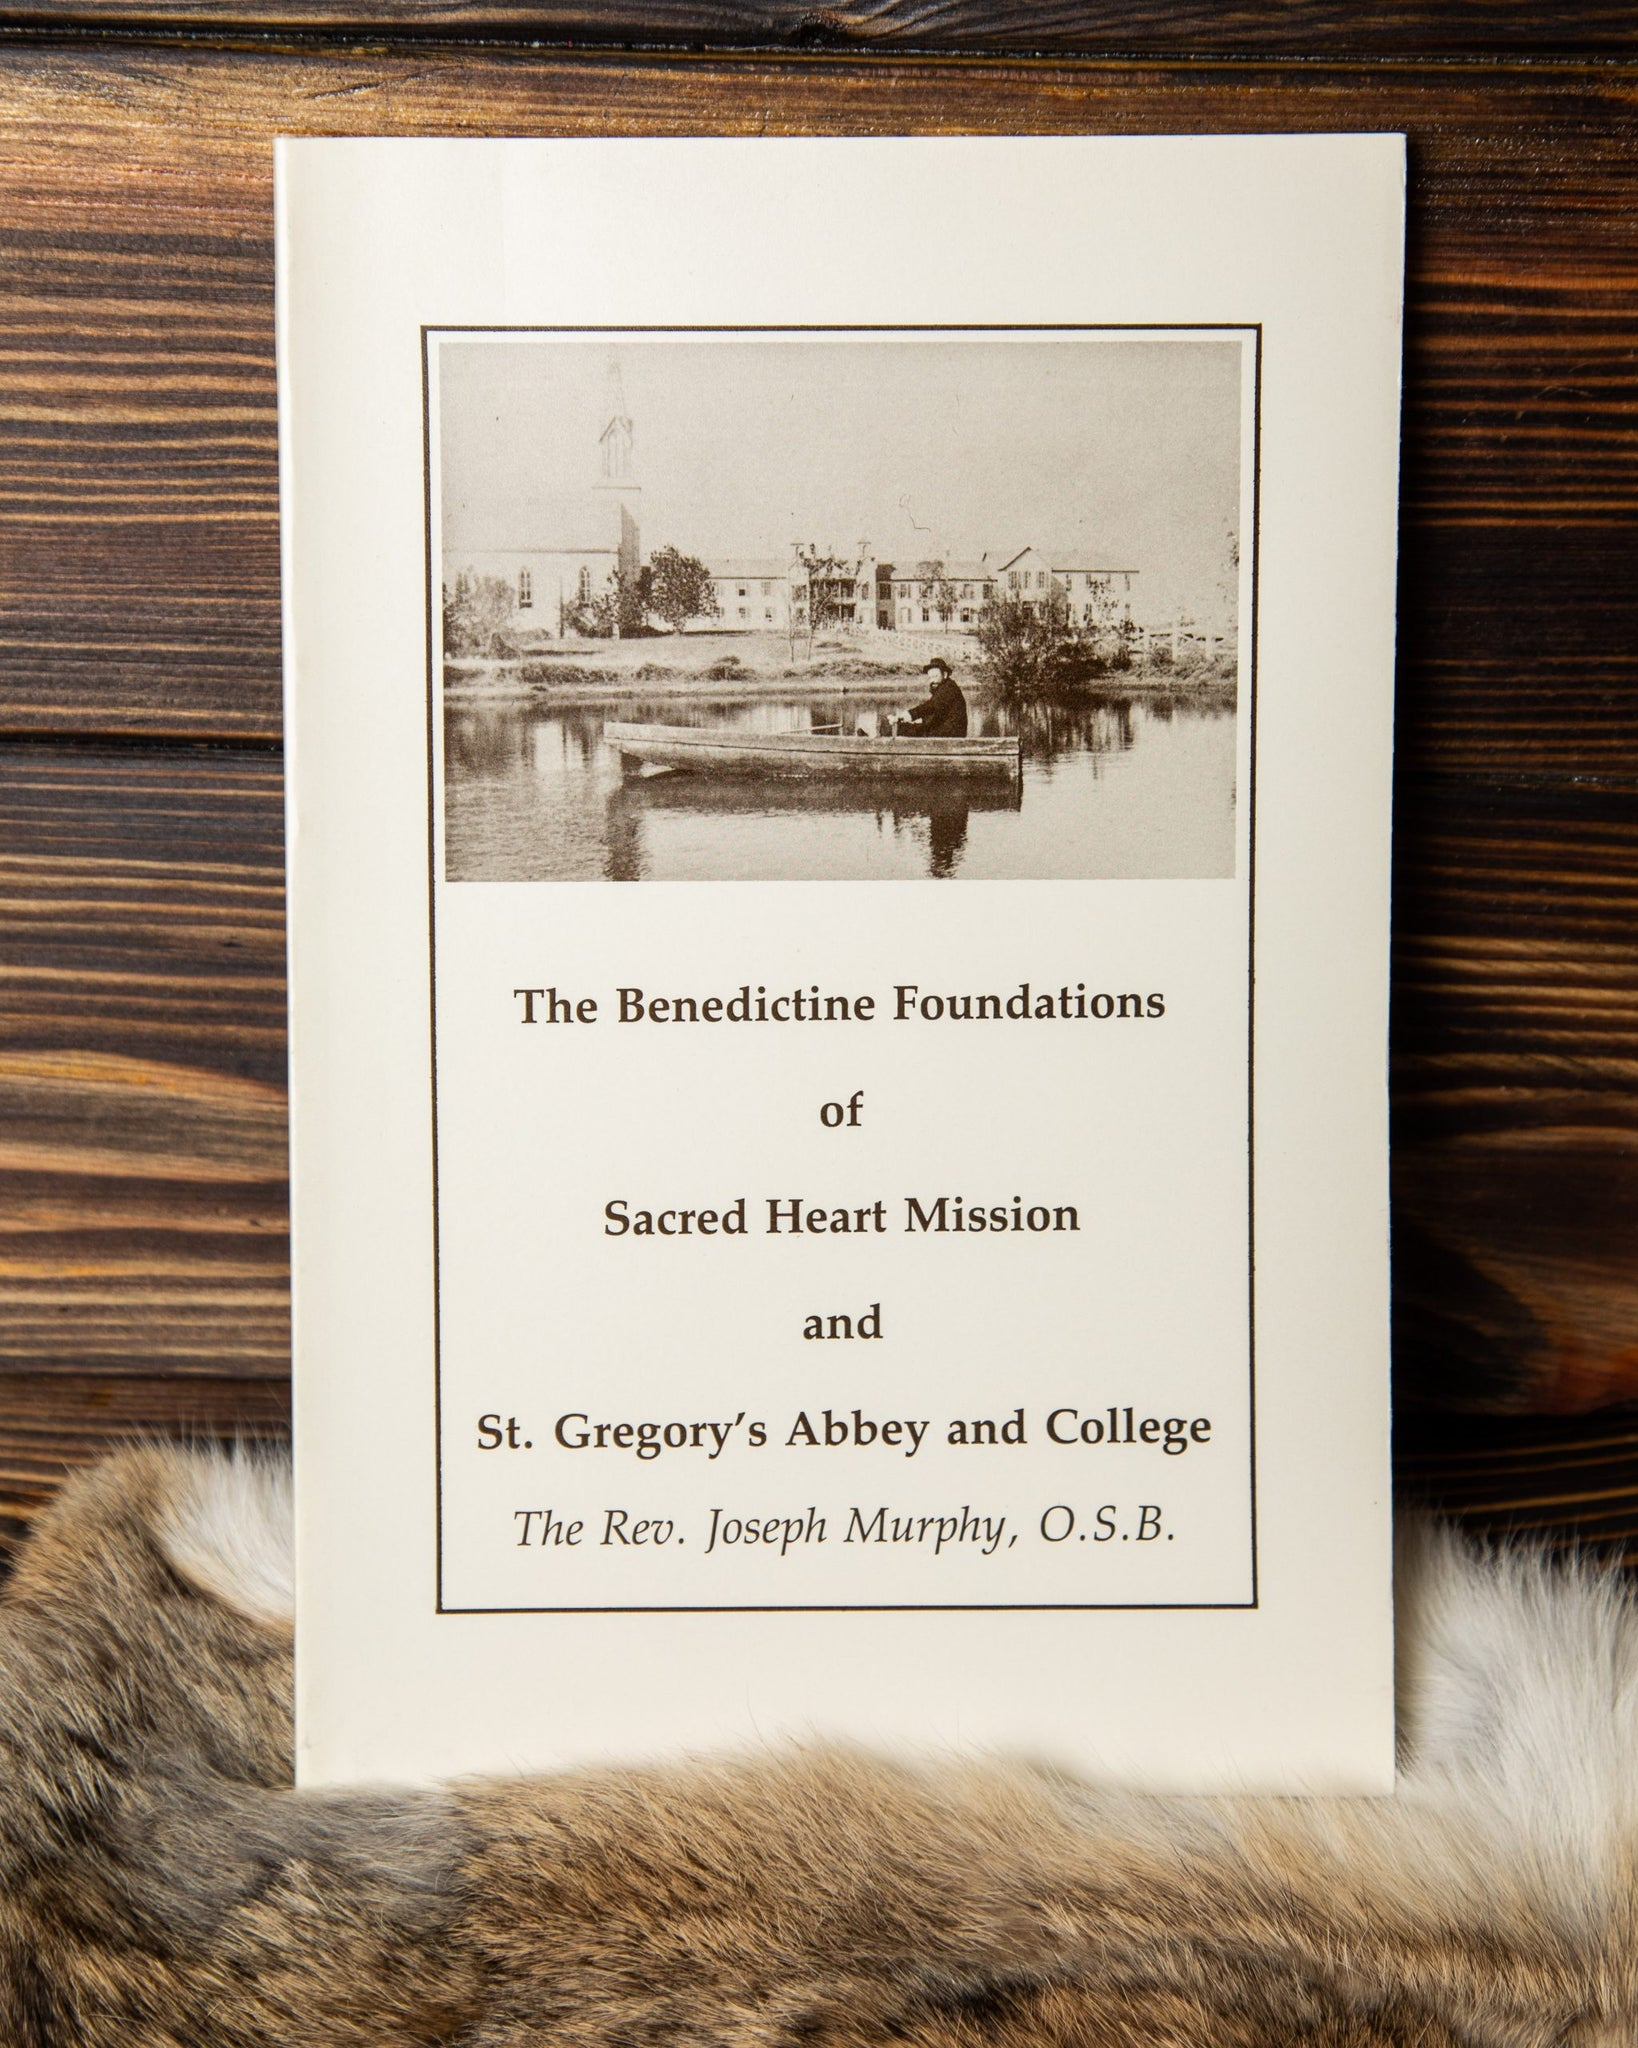 The Benedictine Foundations of Sacred Heart Mission & St. Gregory's Abbey & College